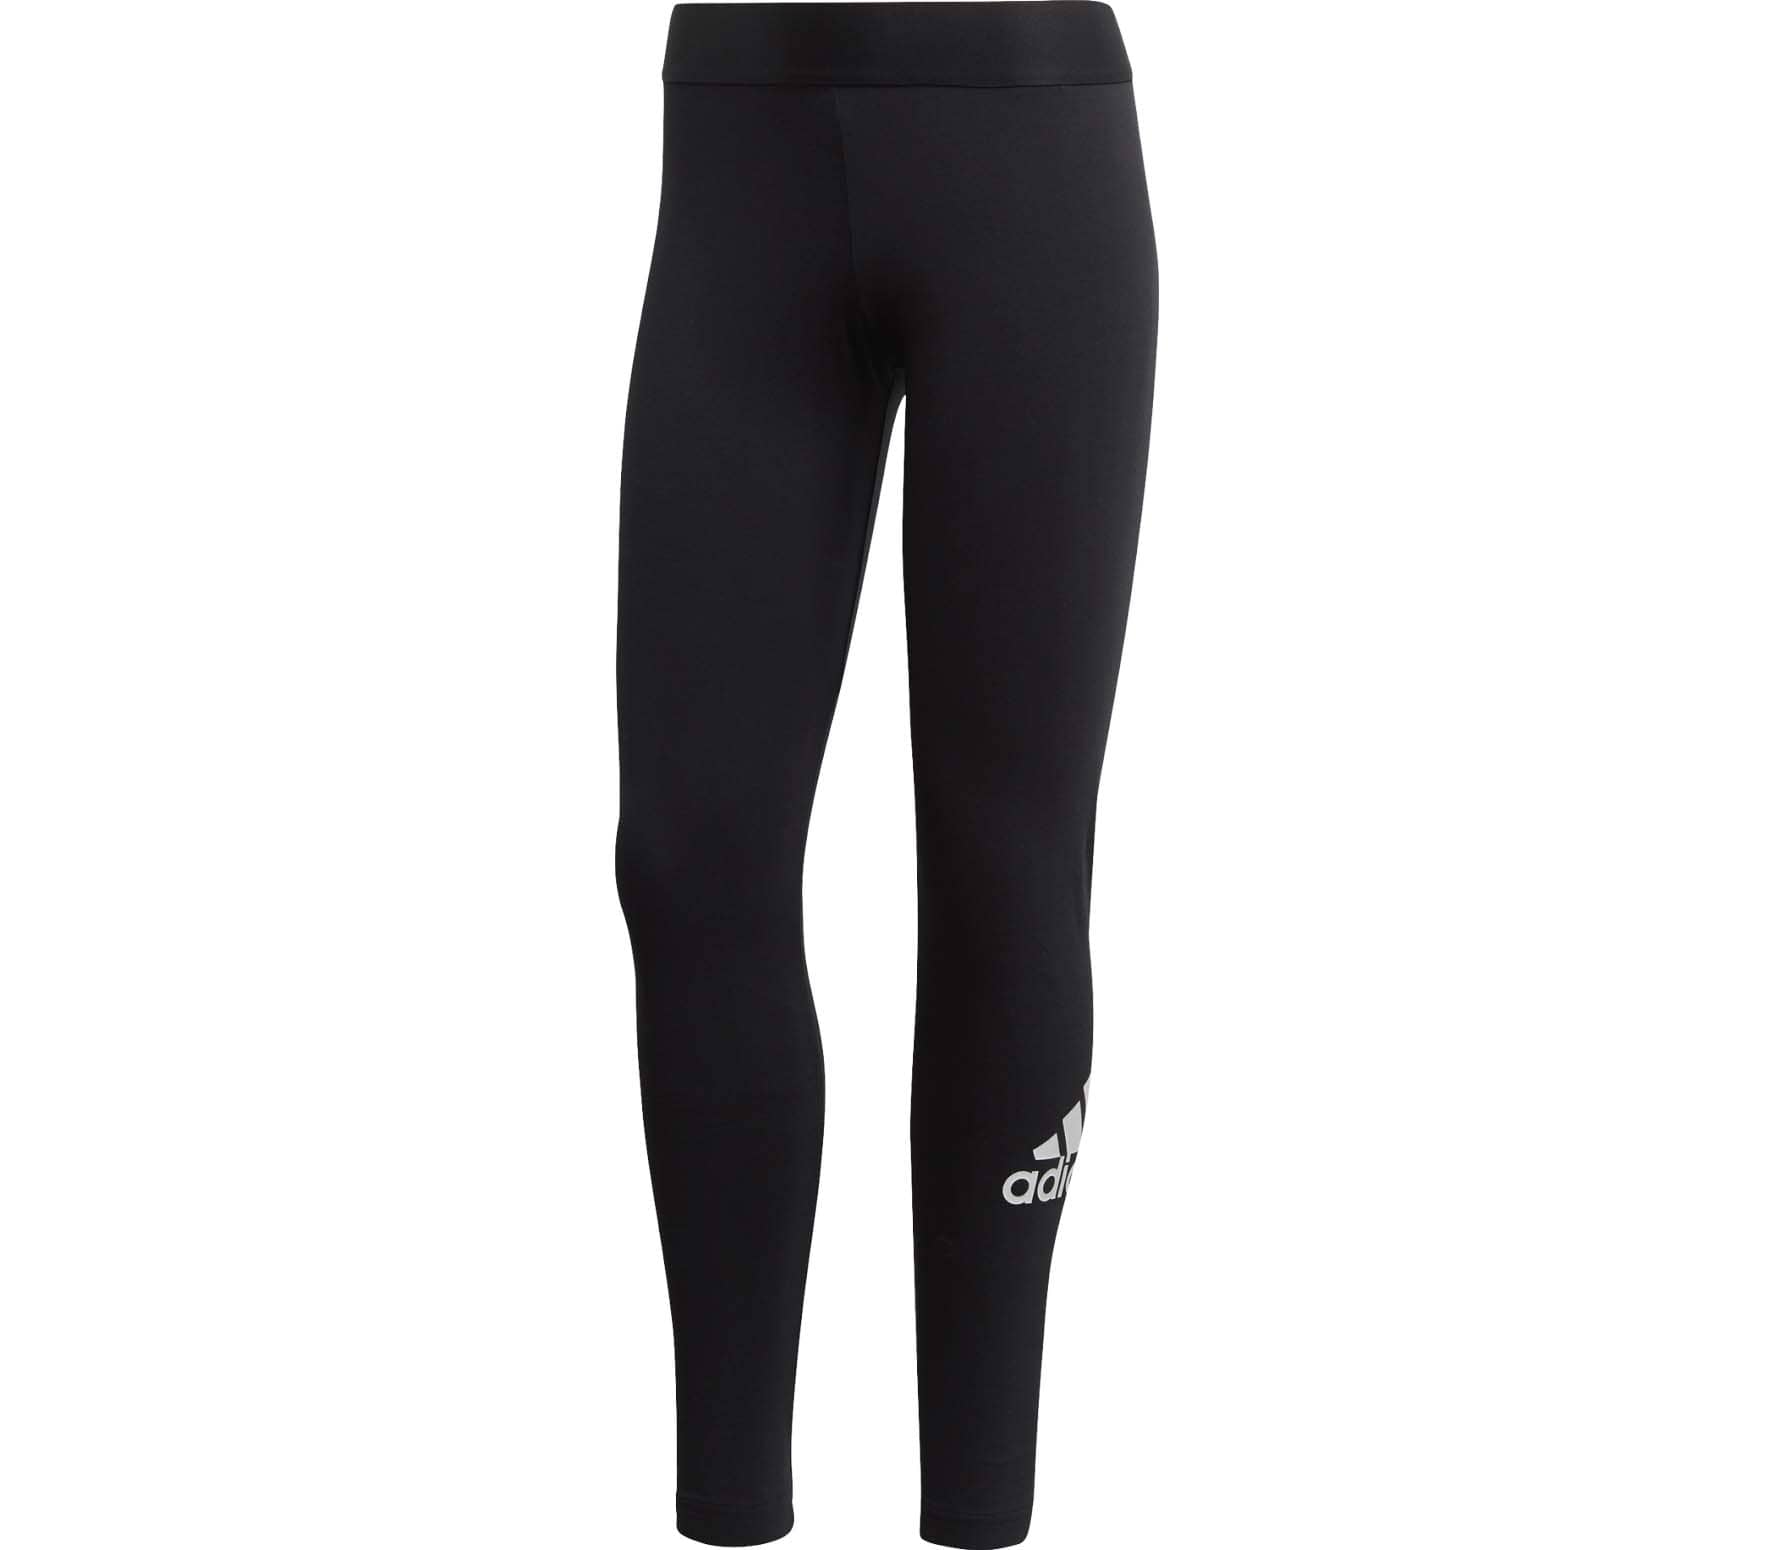 76dfabae9890d3 adidas Women's Must Haves Badge of Sport Women Tights black - buy it ...